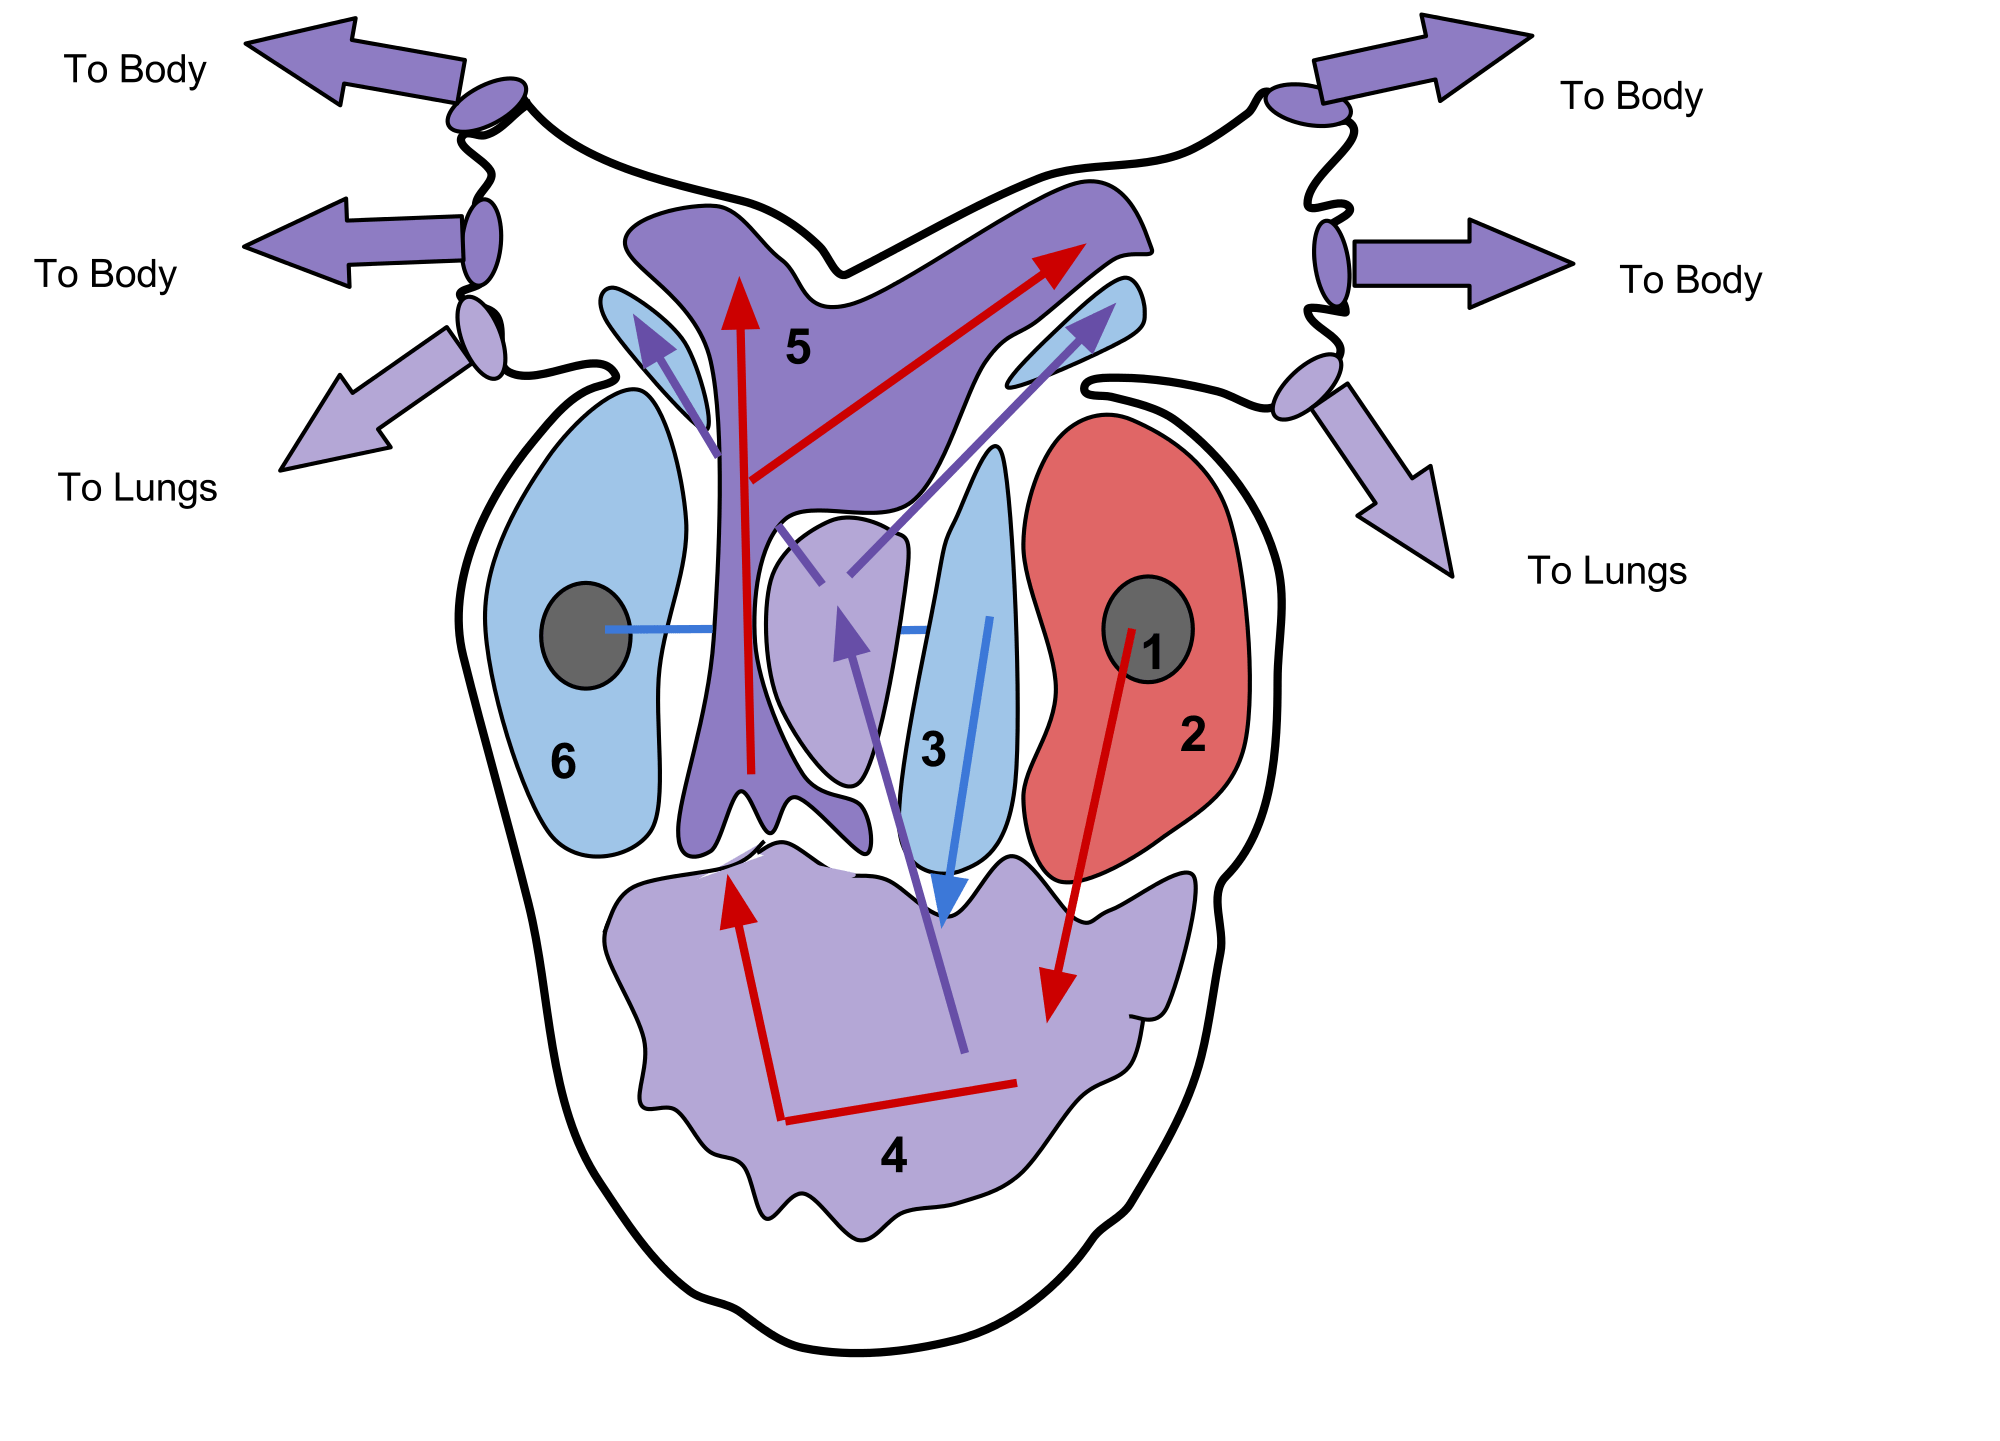 3 chambered heart diagram car alarm system wiring body regions clipart for ap clipground